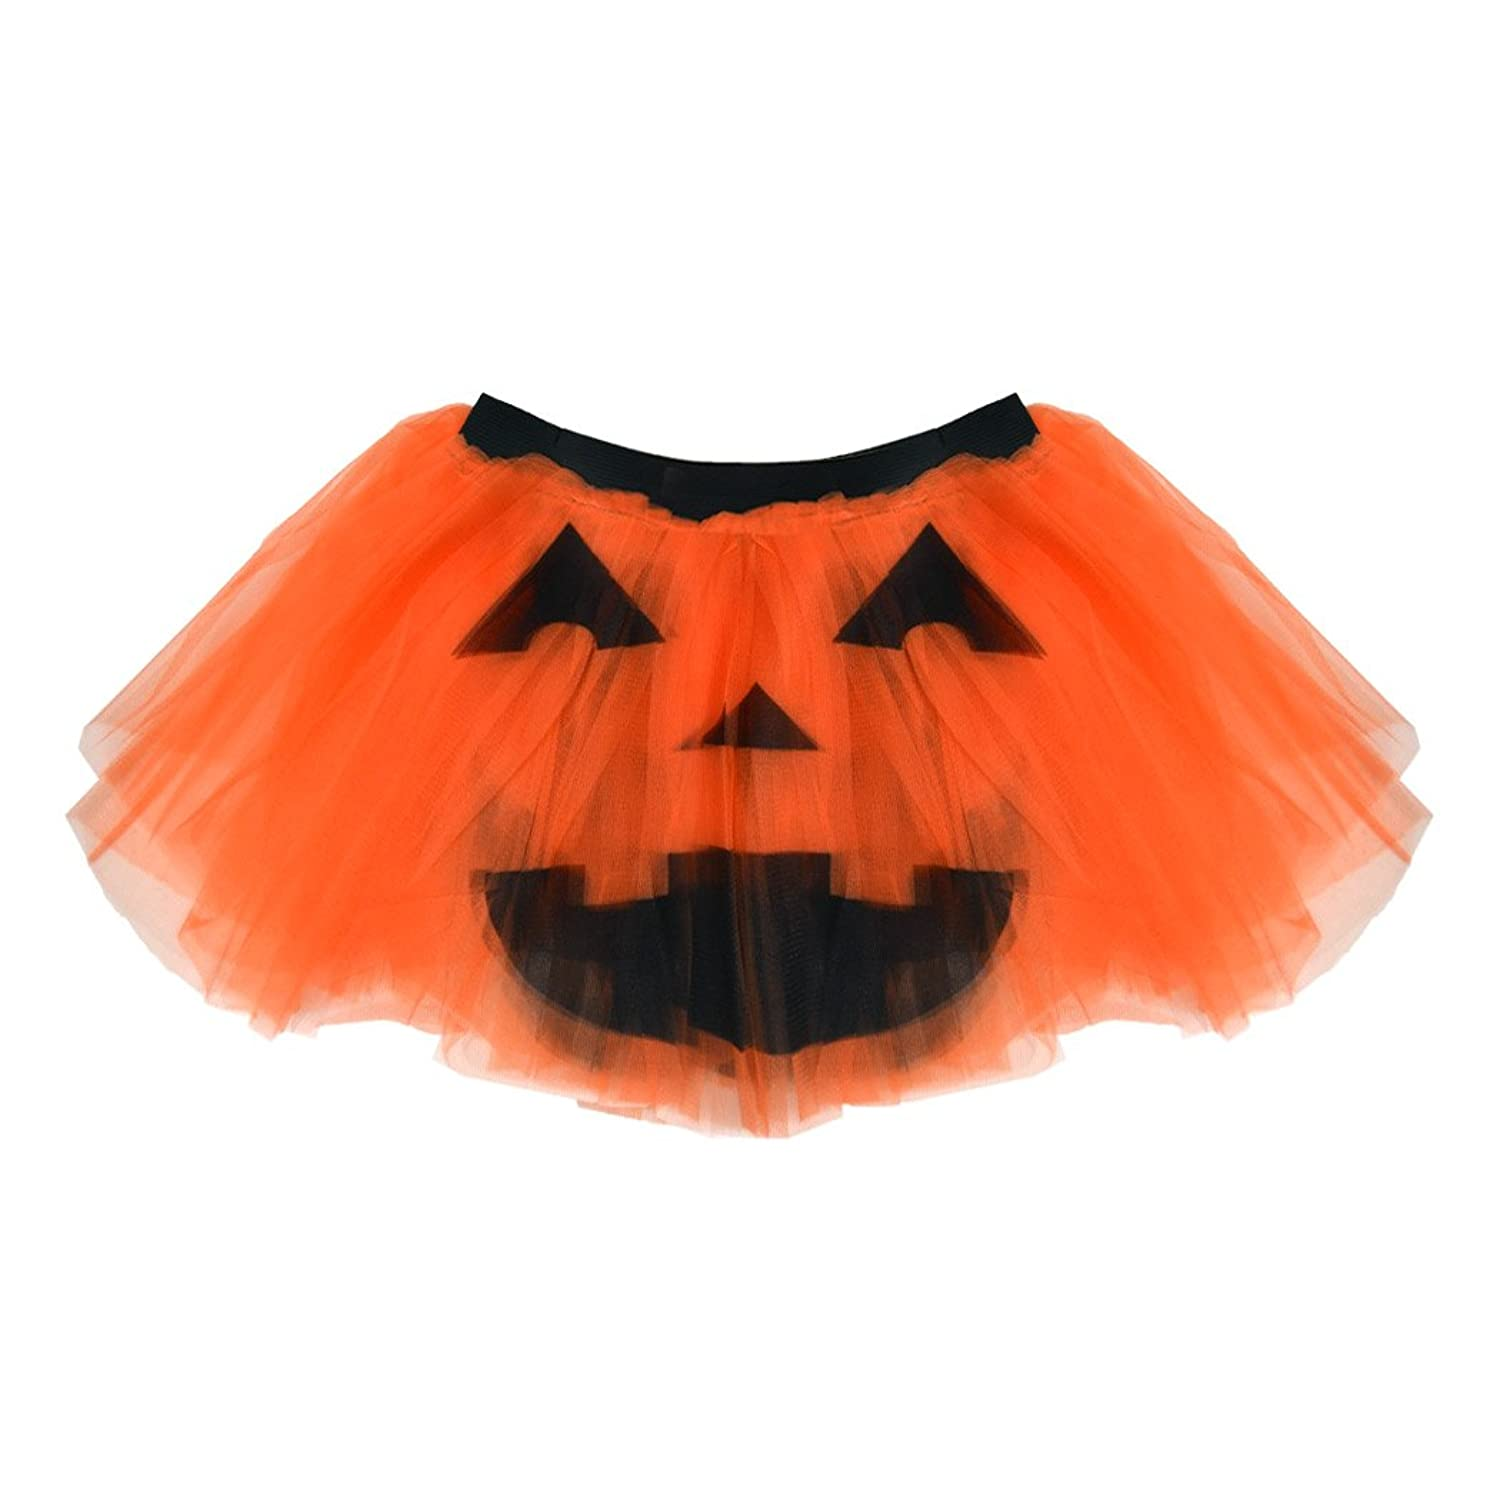 b5995a0a3 Amazon.com: Gone For a Run Runners Printed Tutu Lightweight | One Size Fits  Most | Colorful Running Skirts | Jack O Lantern: Clothing